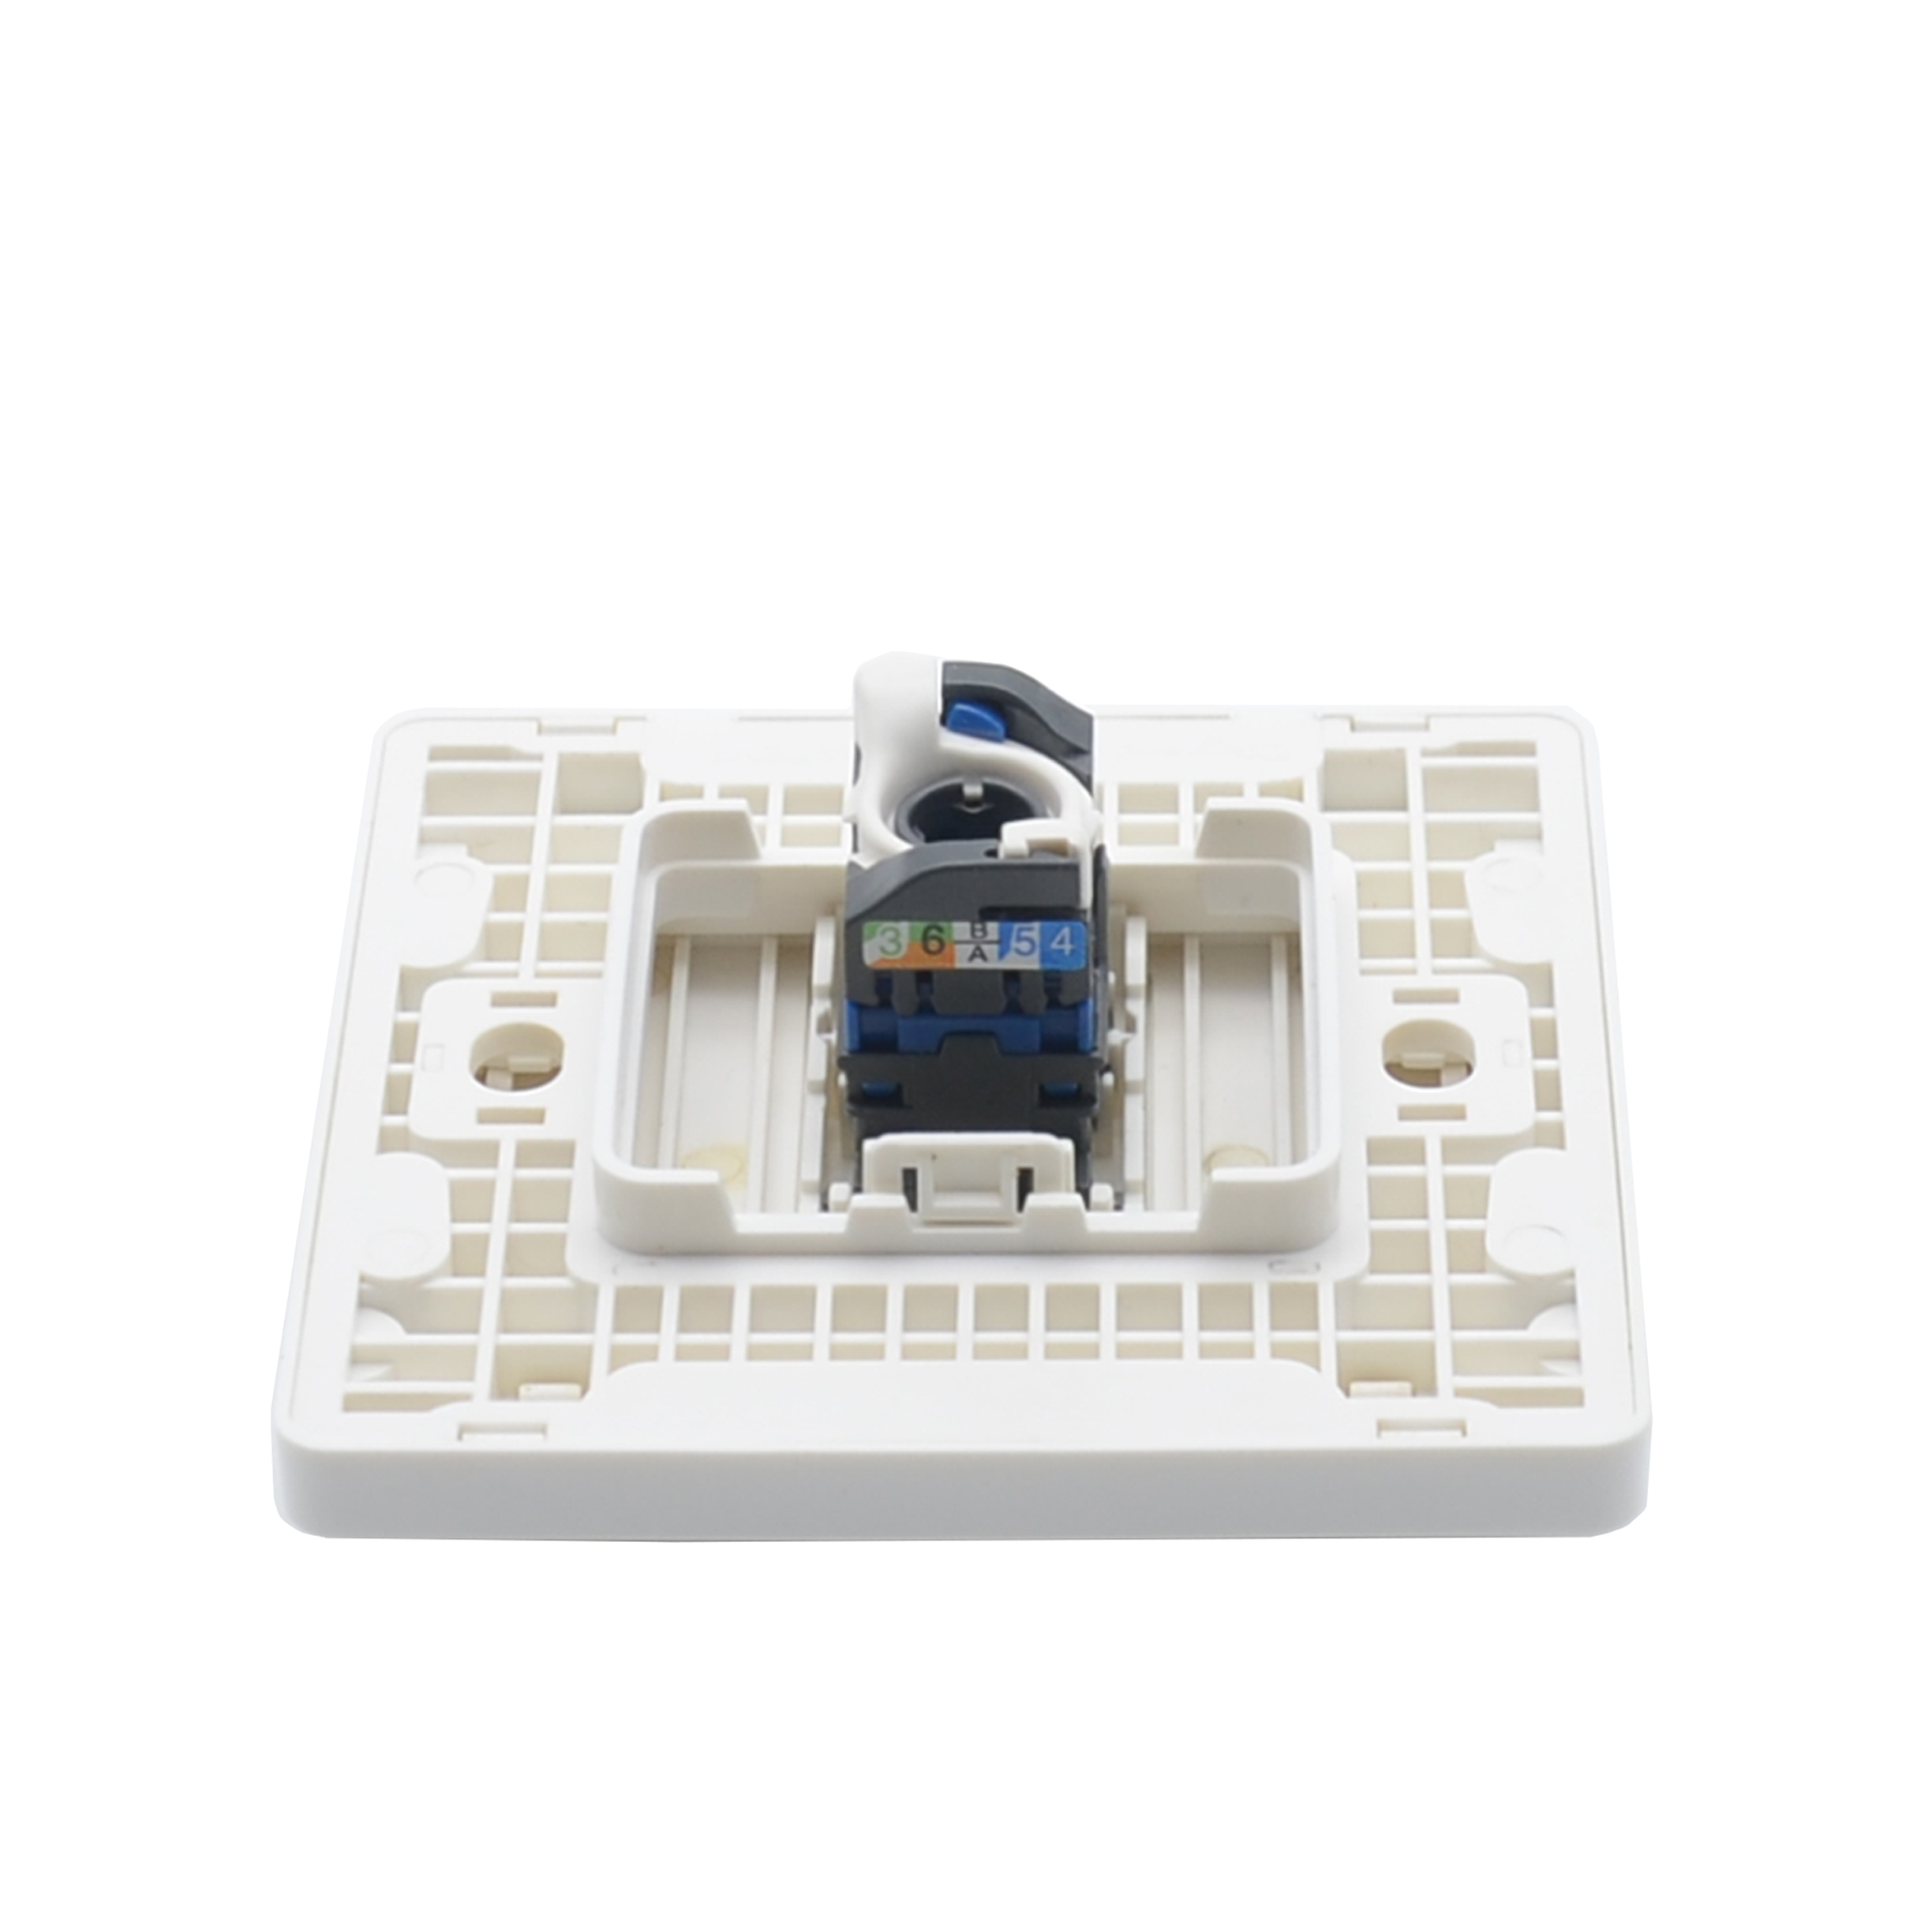 MT-5908 Household Network Outlet RJ45 Network Cable Face Plate